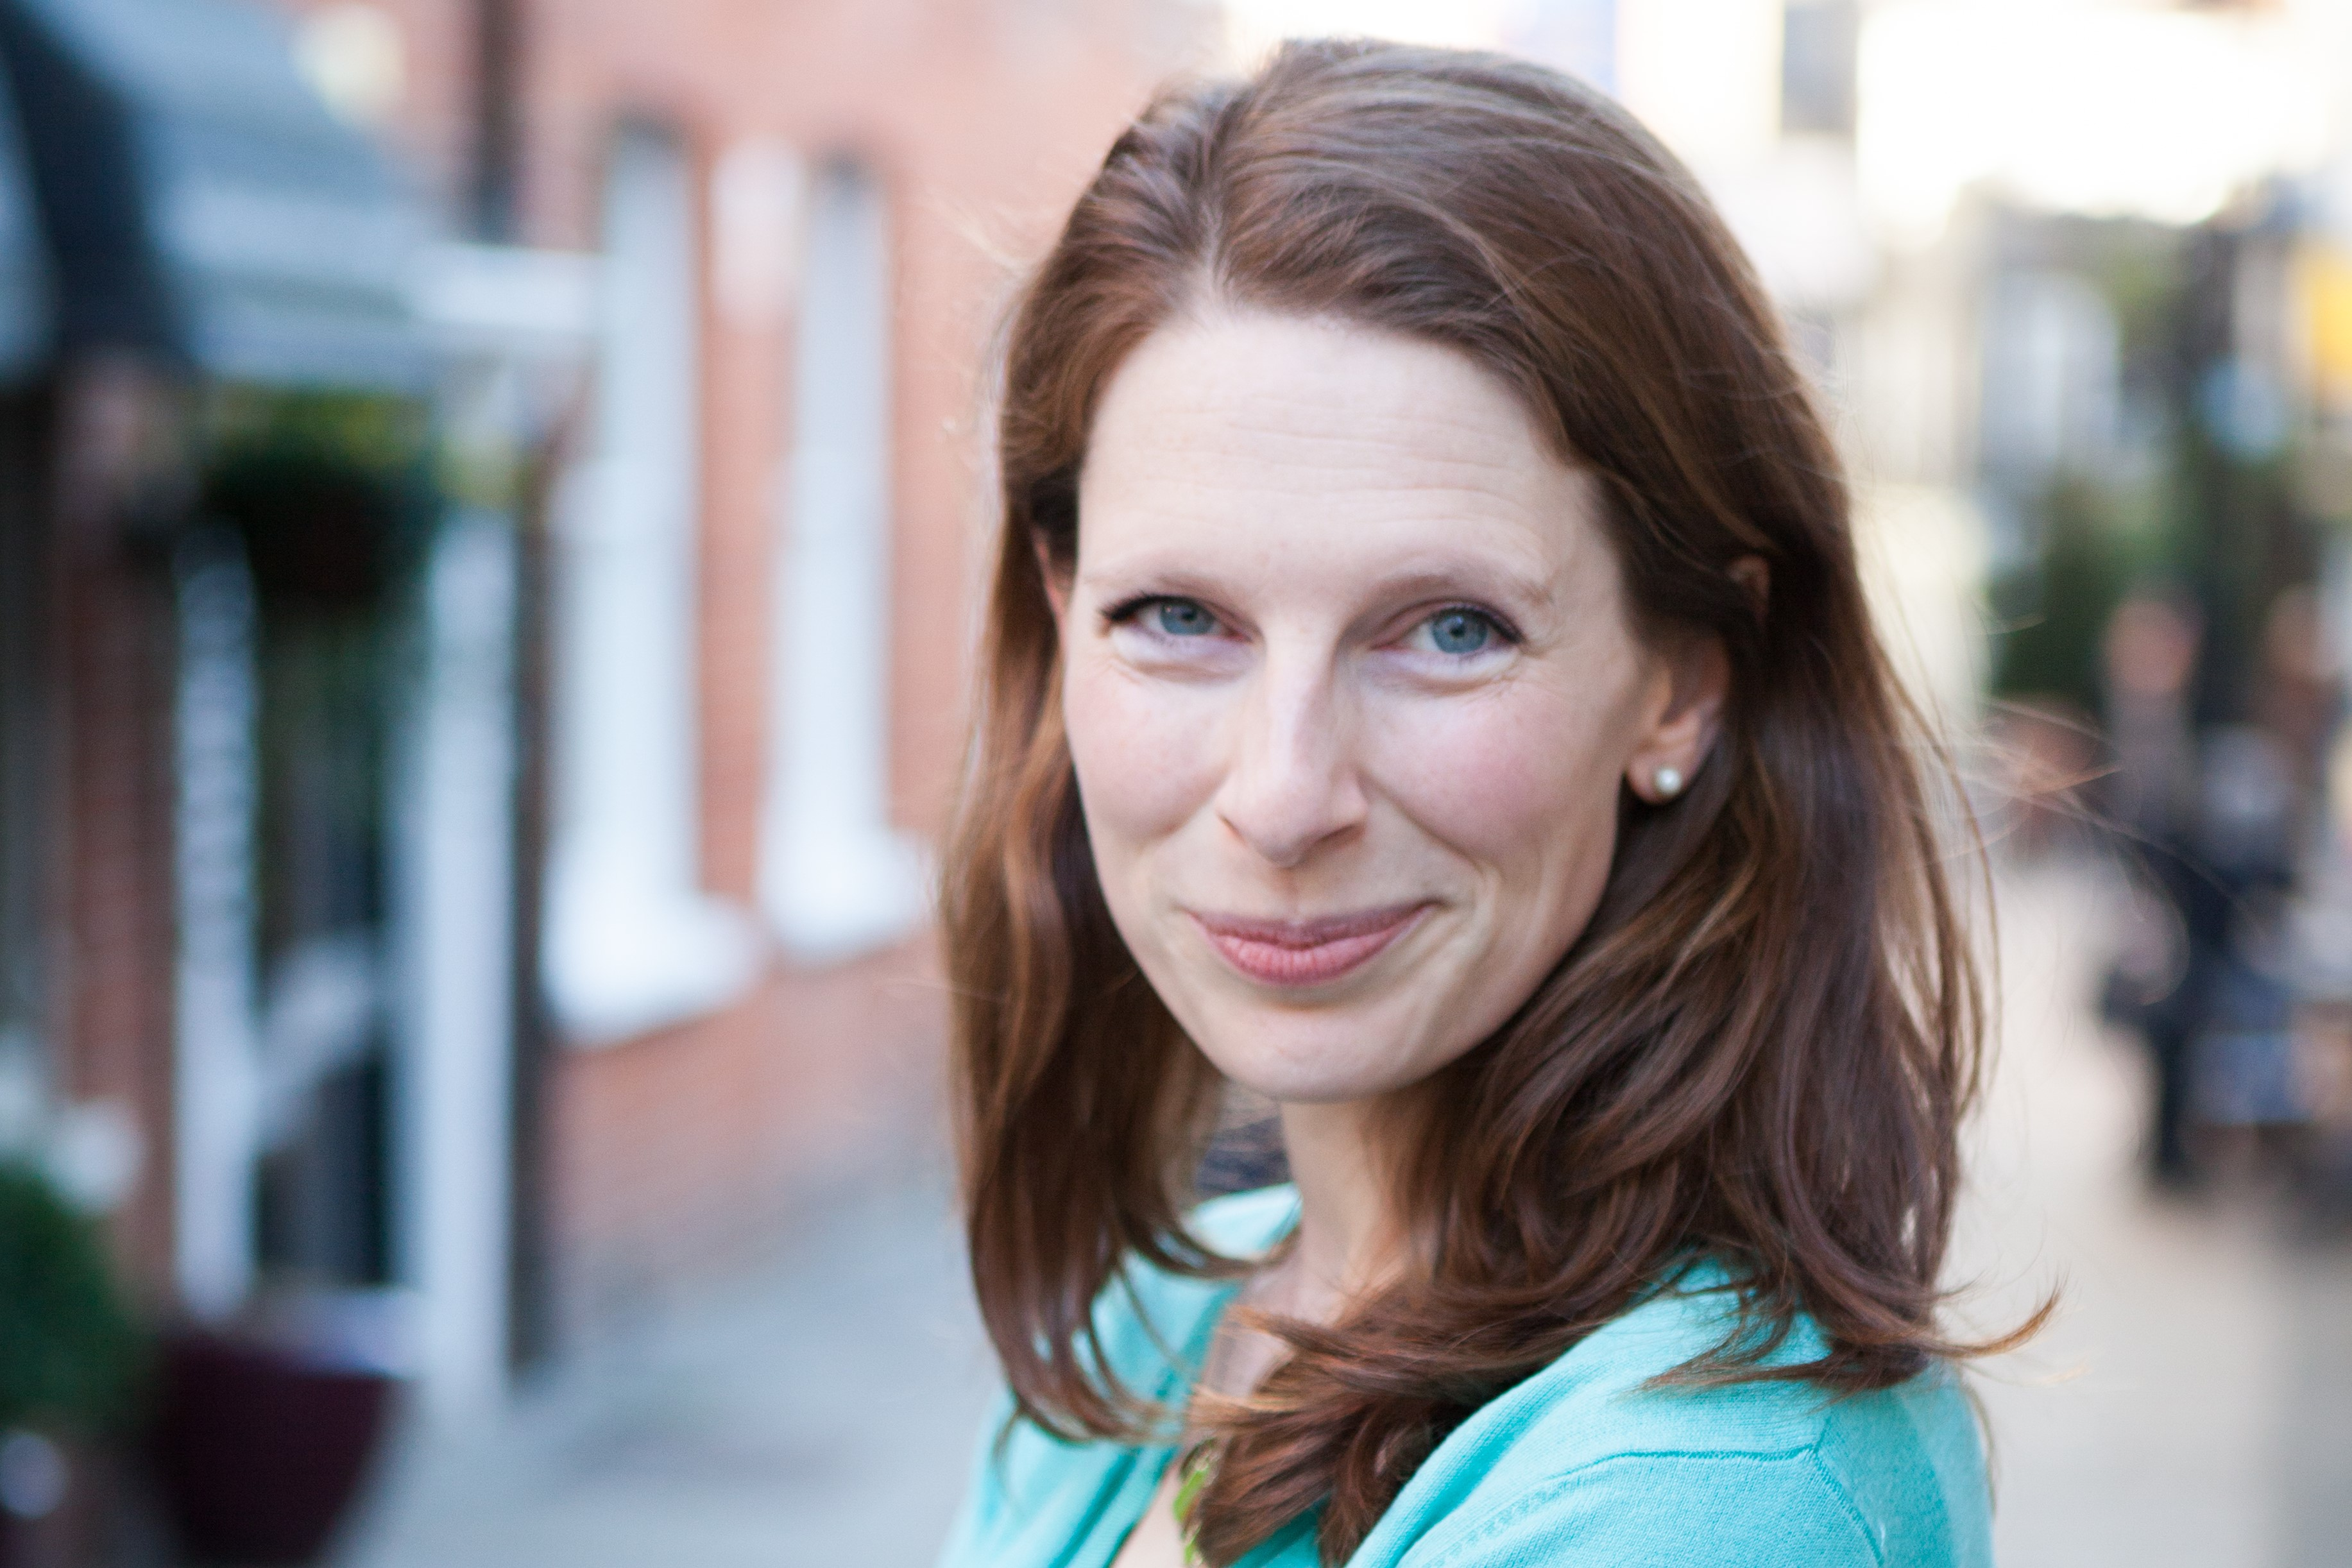 An Insight into British Business Etiquette by Victoria Rennoldson, Founder of Perfect Cuppa